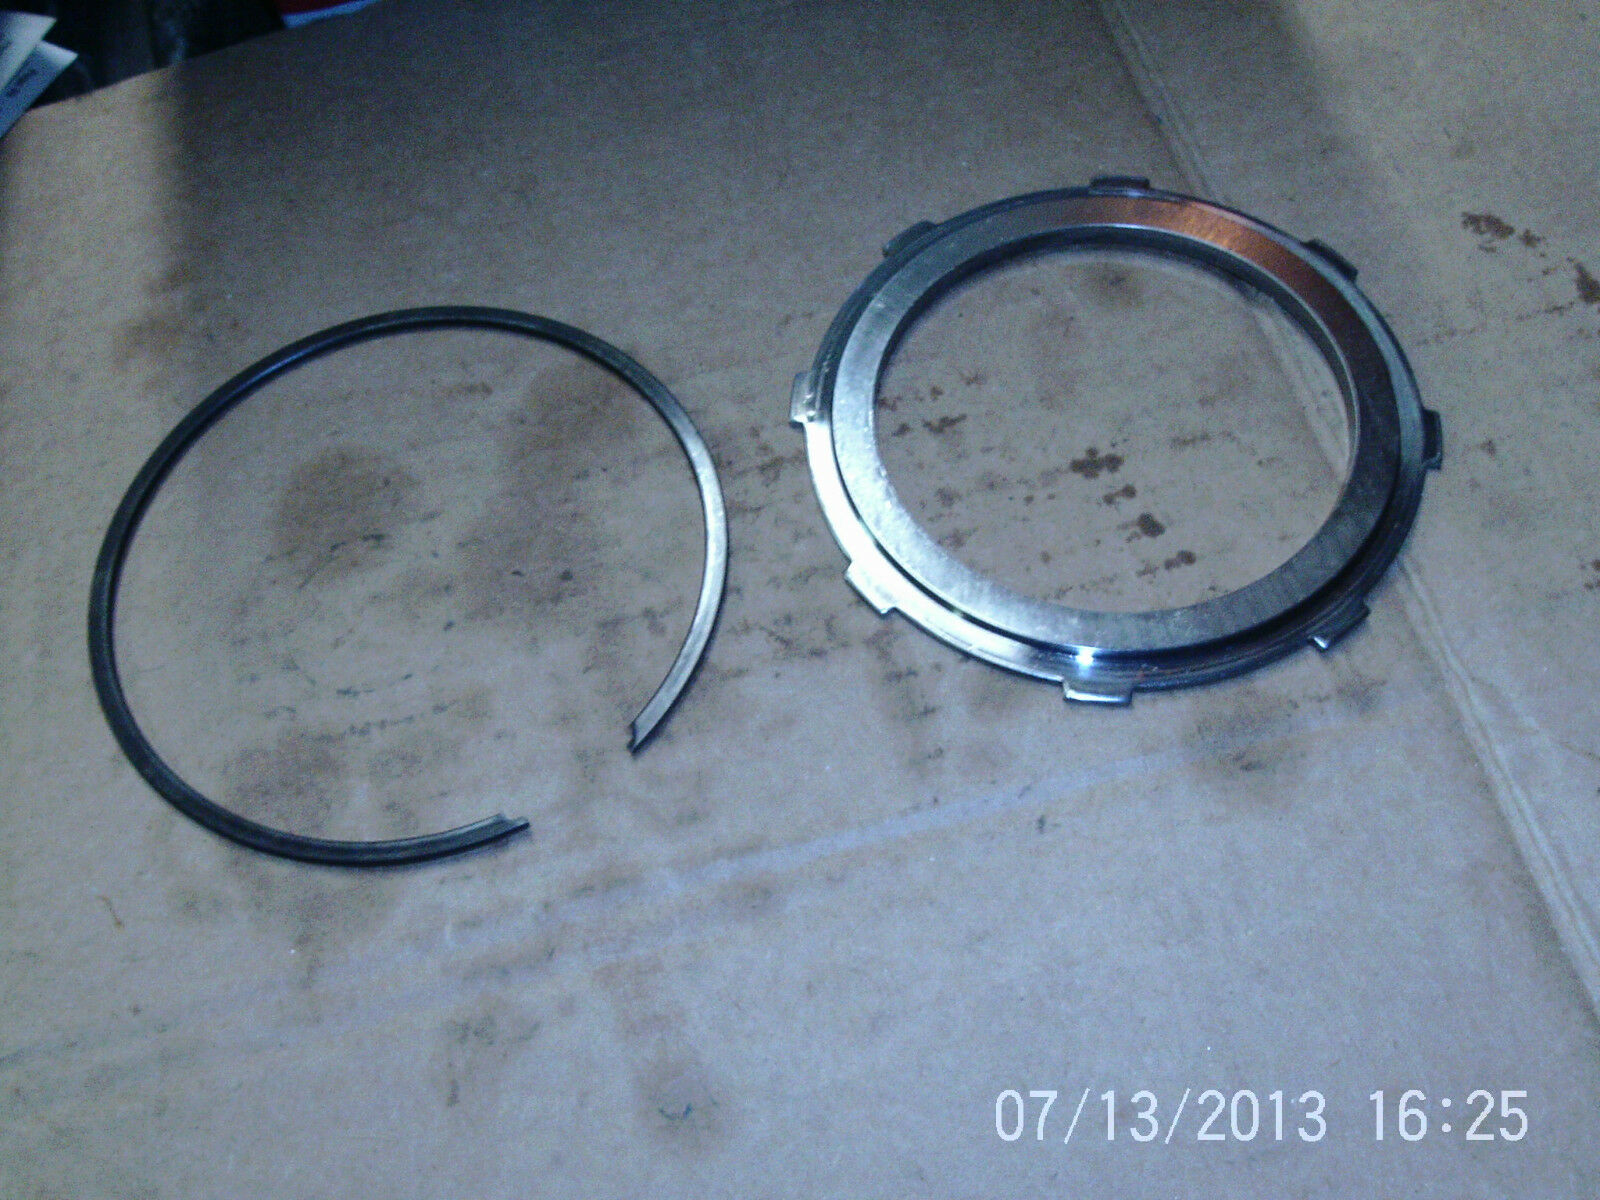 Used Saturn Automatic Transmissions And Related Parts For Sale Page 8 Vue Transmission Belt Gm Taat Mp6 Fourth Clutch Backing Plate Snap Ring Sl1 Sc1